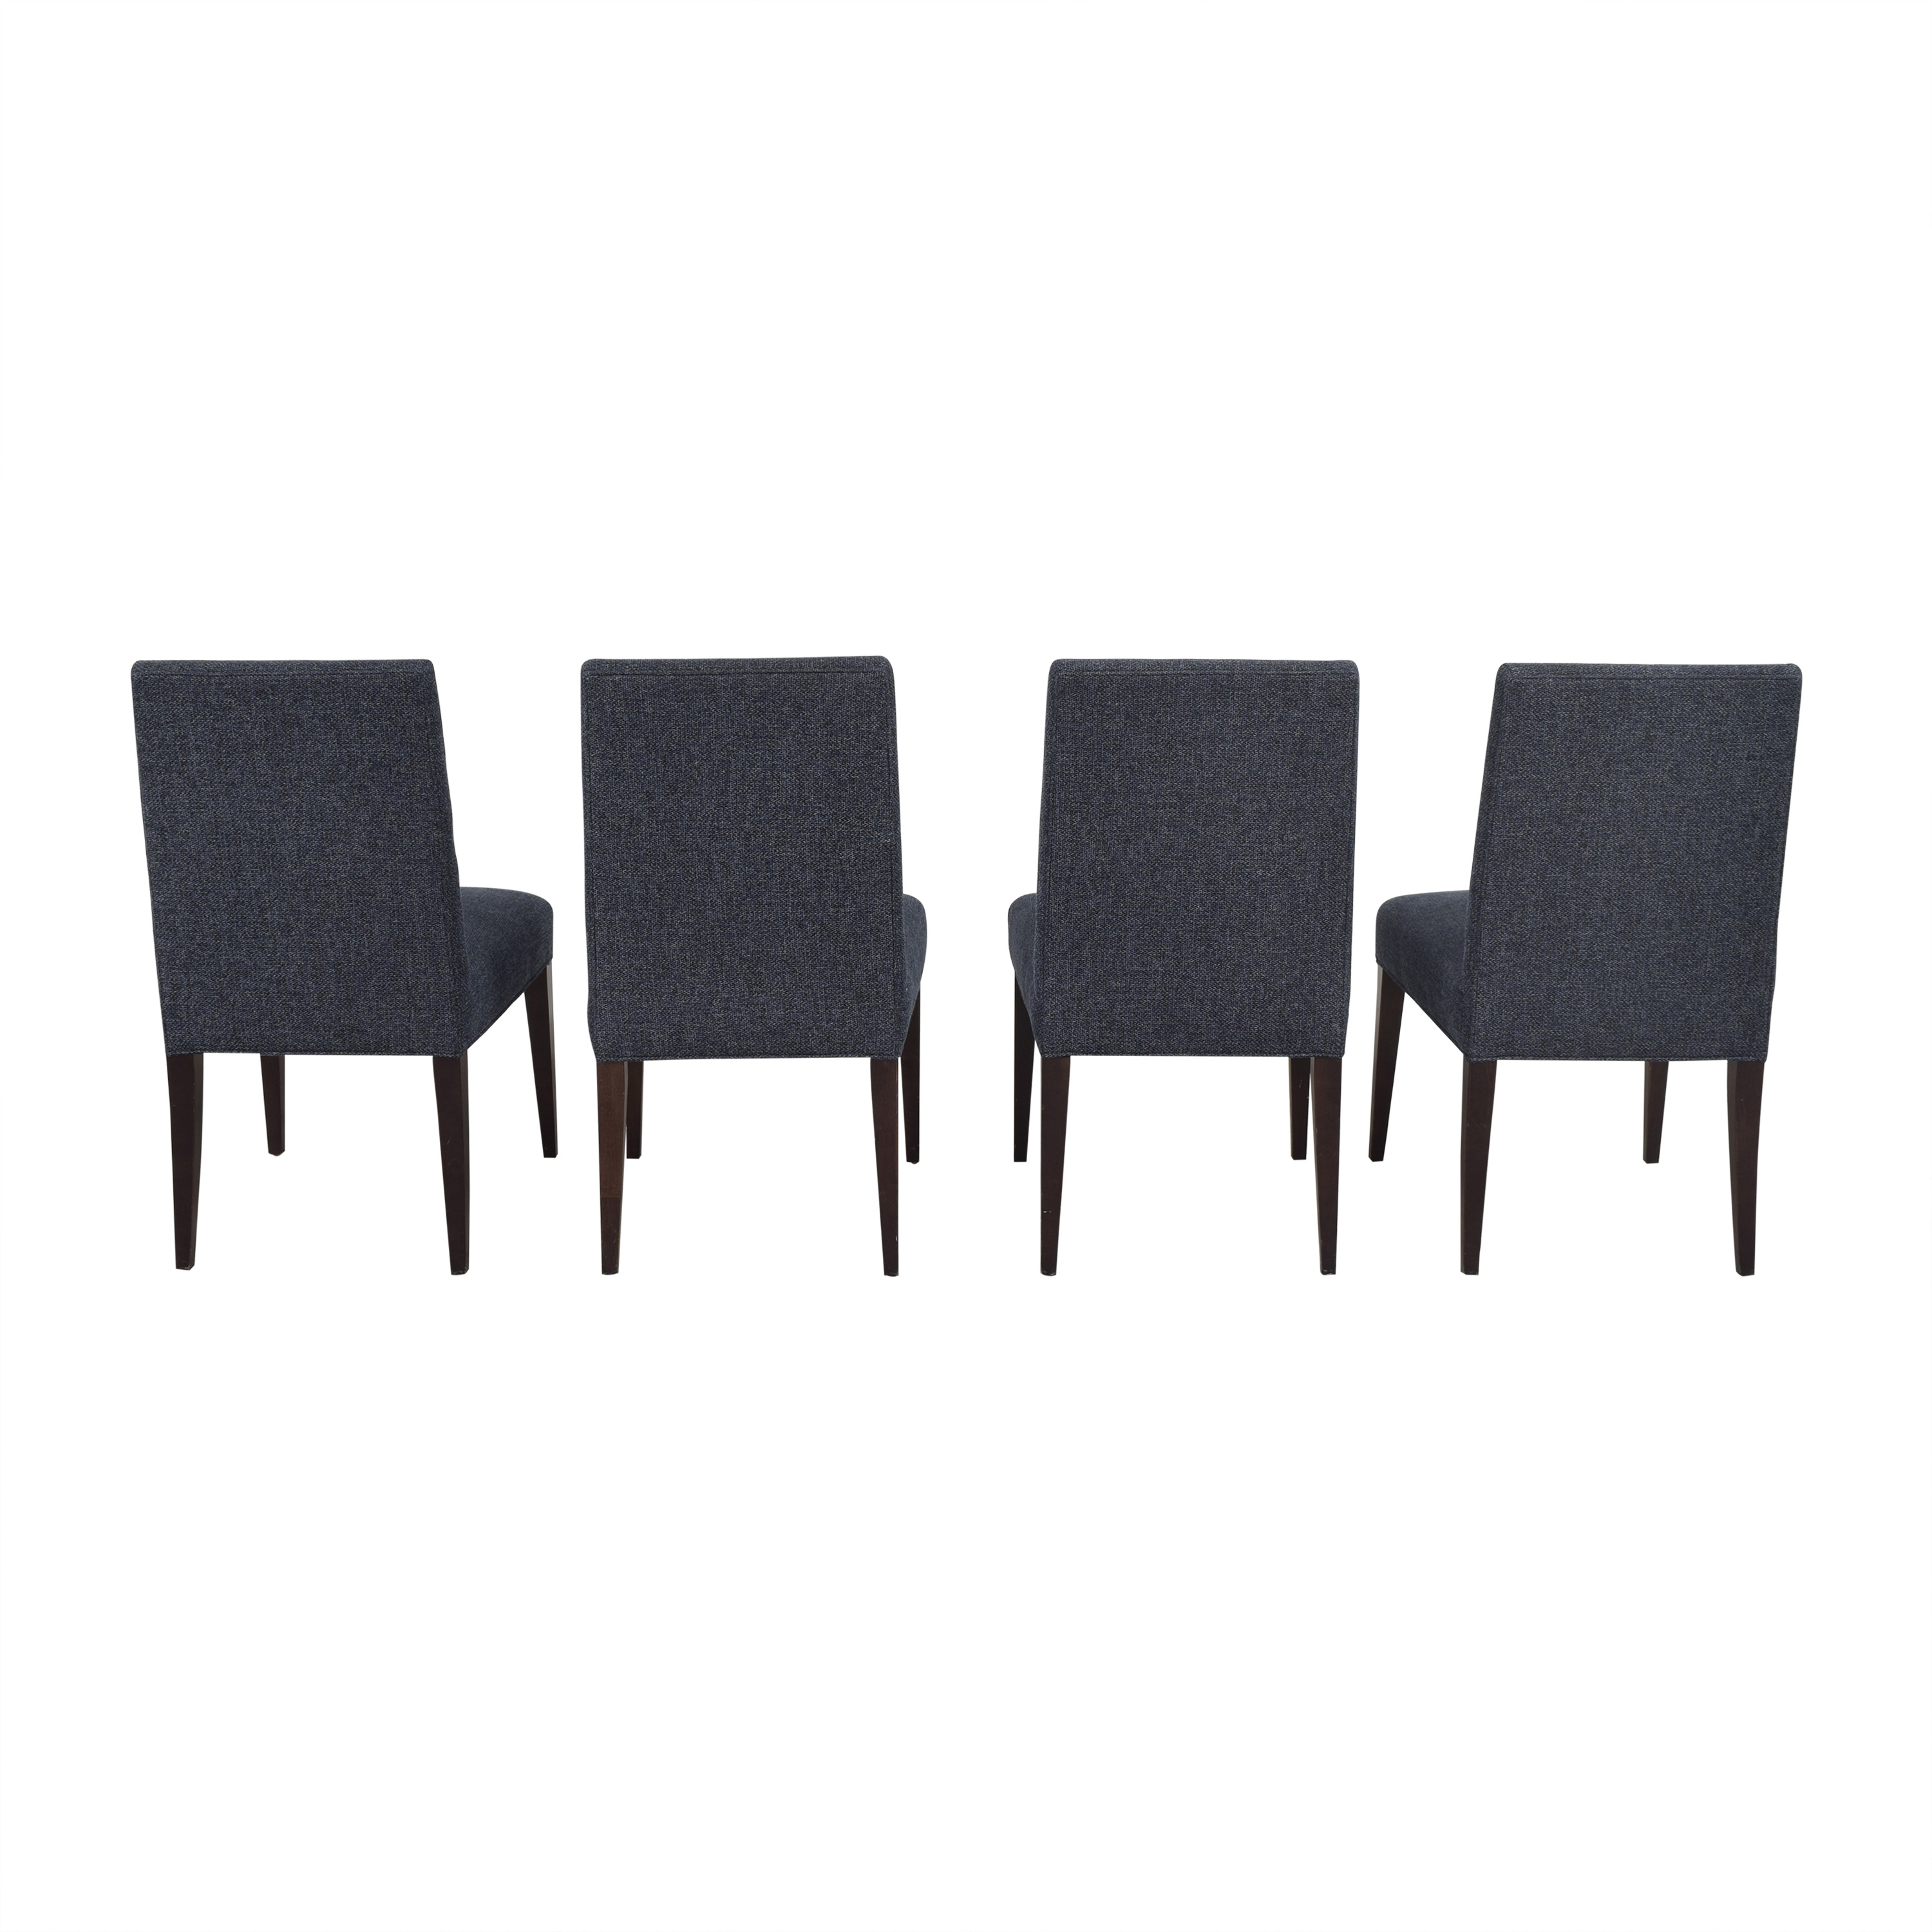 Crate & Barrel Crate & Barrel Miles Upholstered Dining Chairs pa